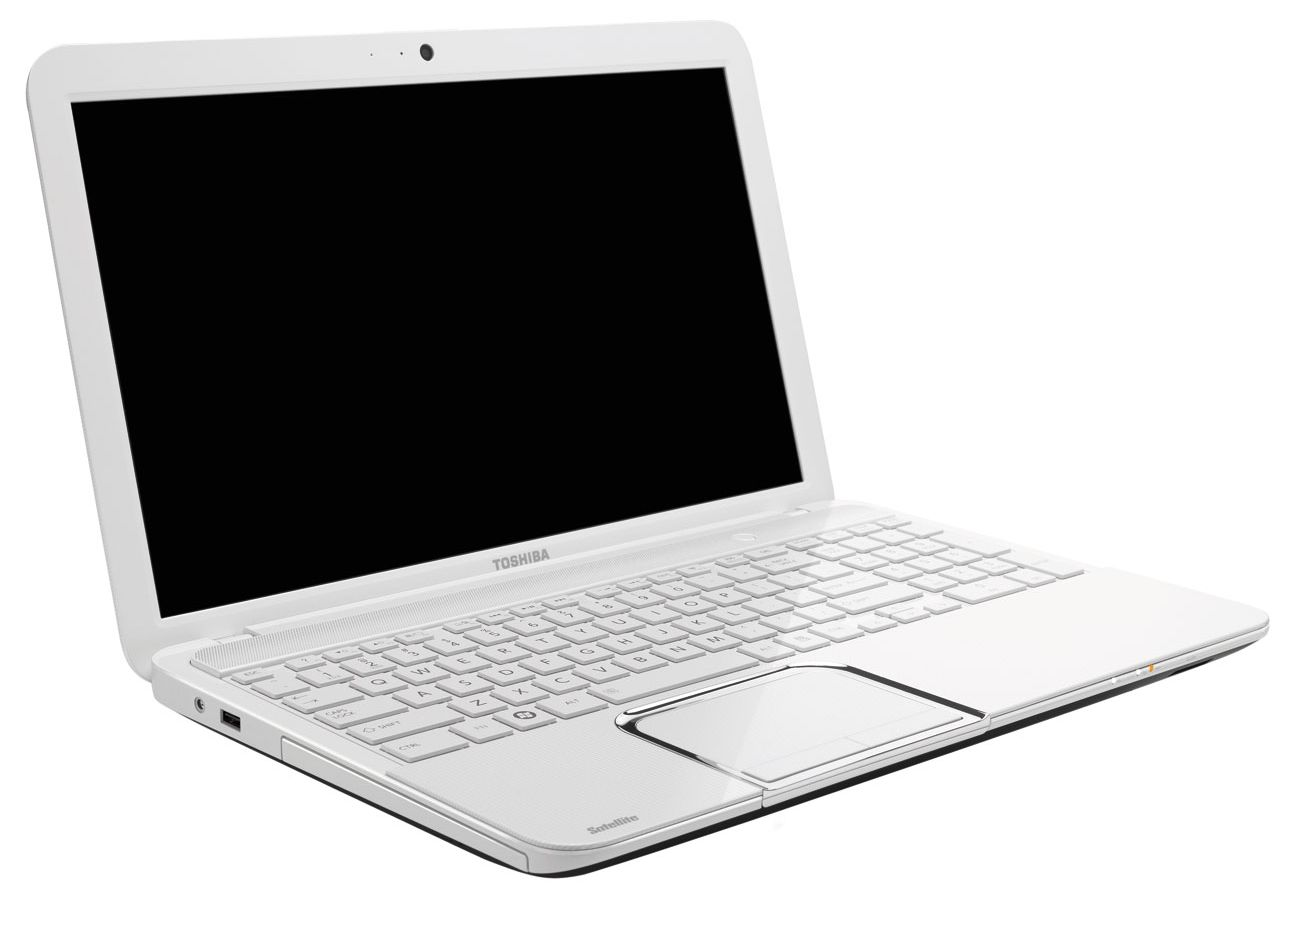 Toshiba Satellite L850-147